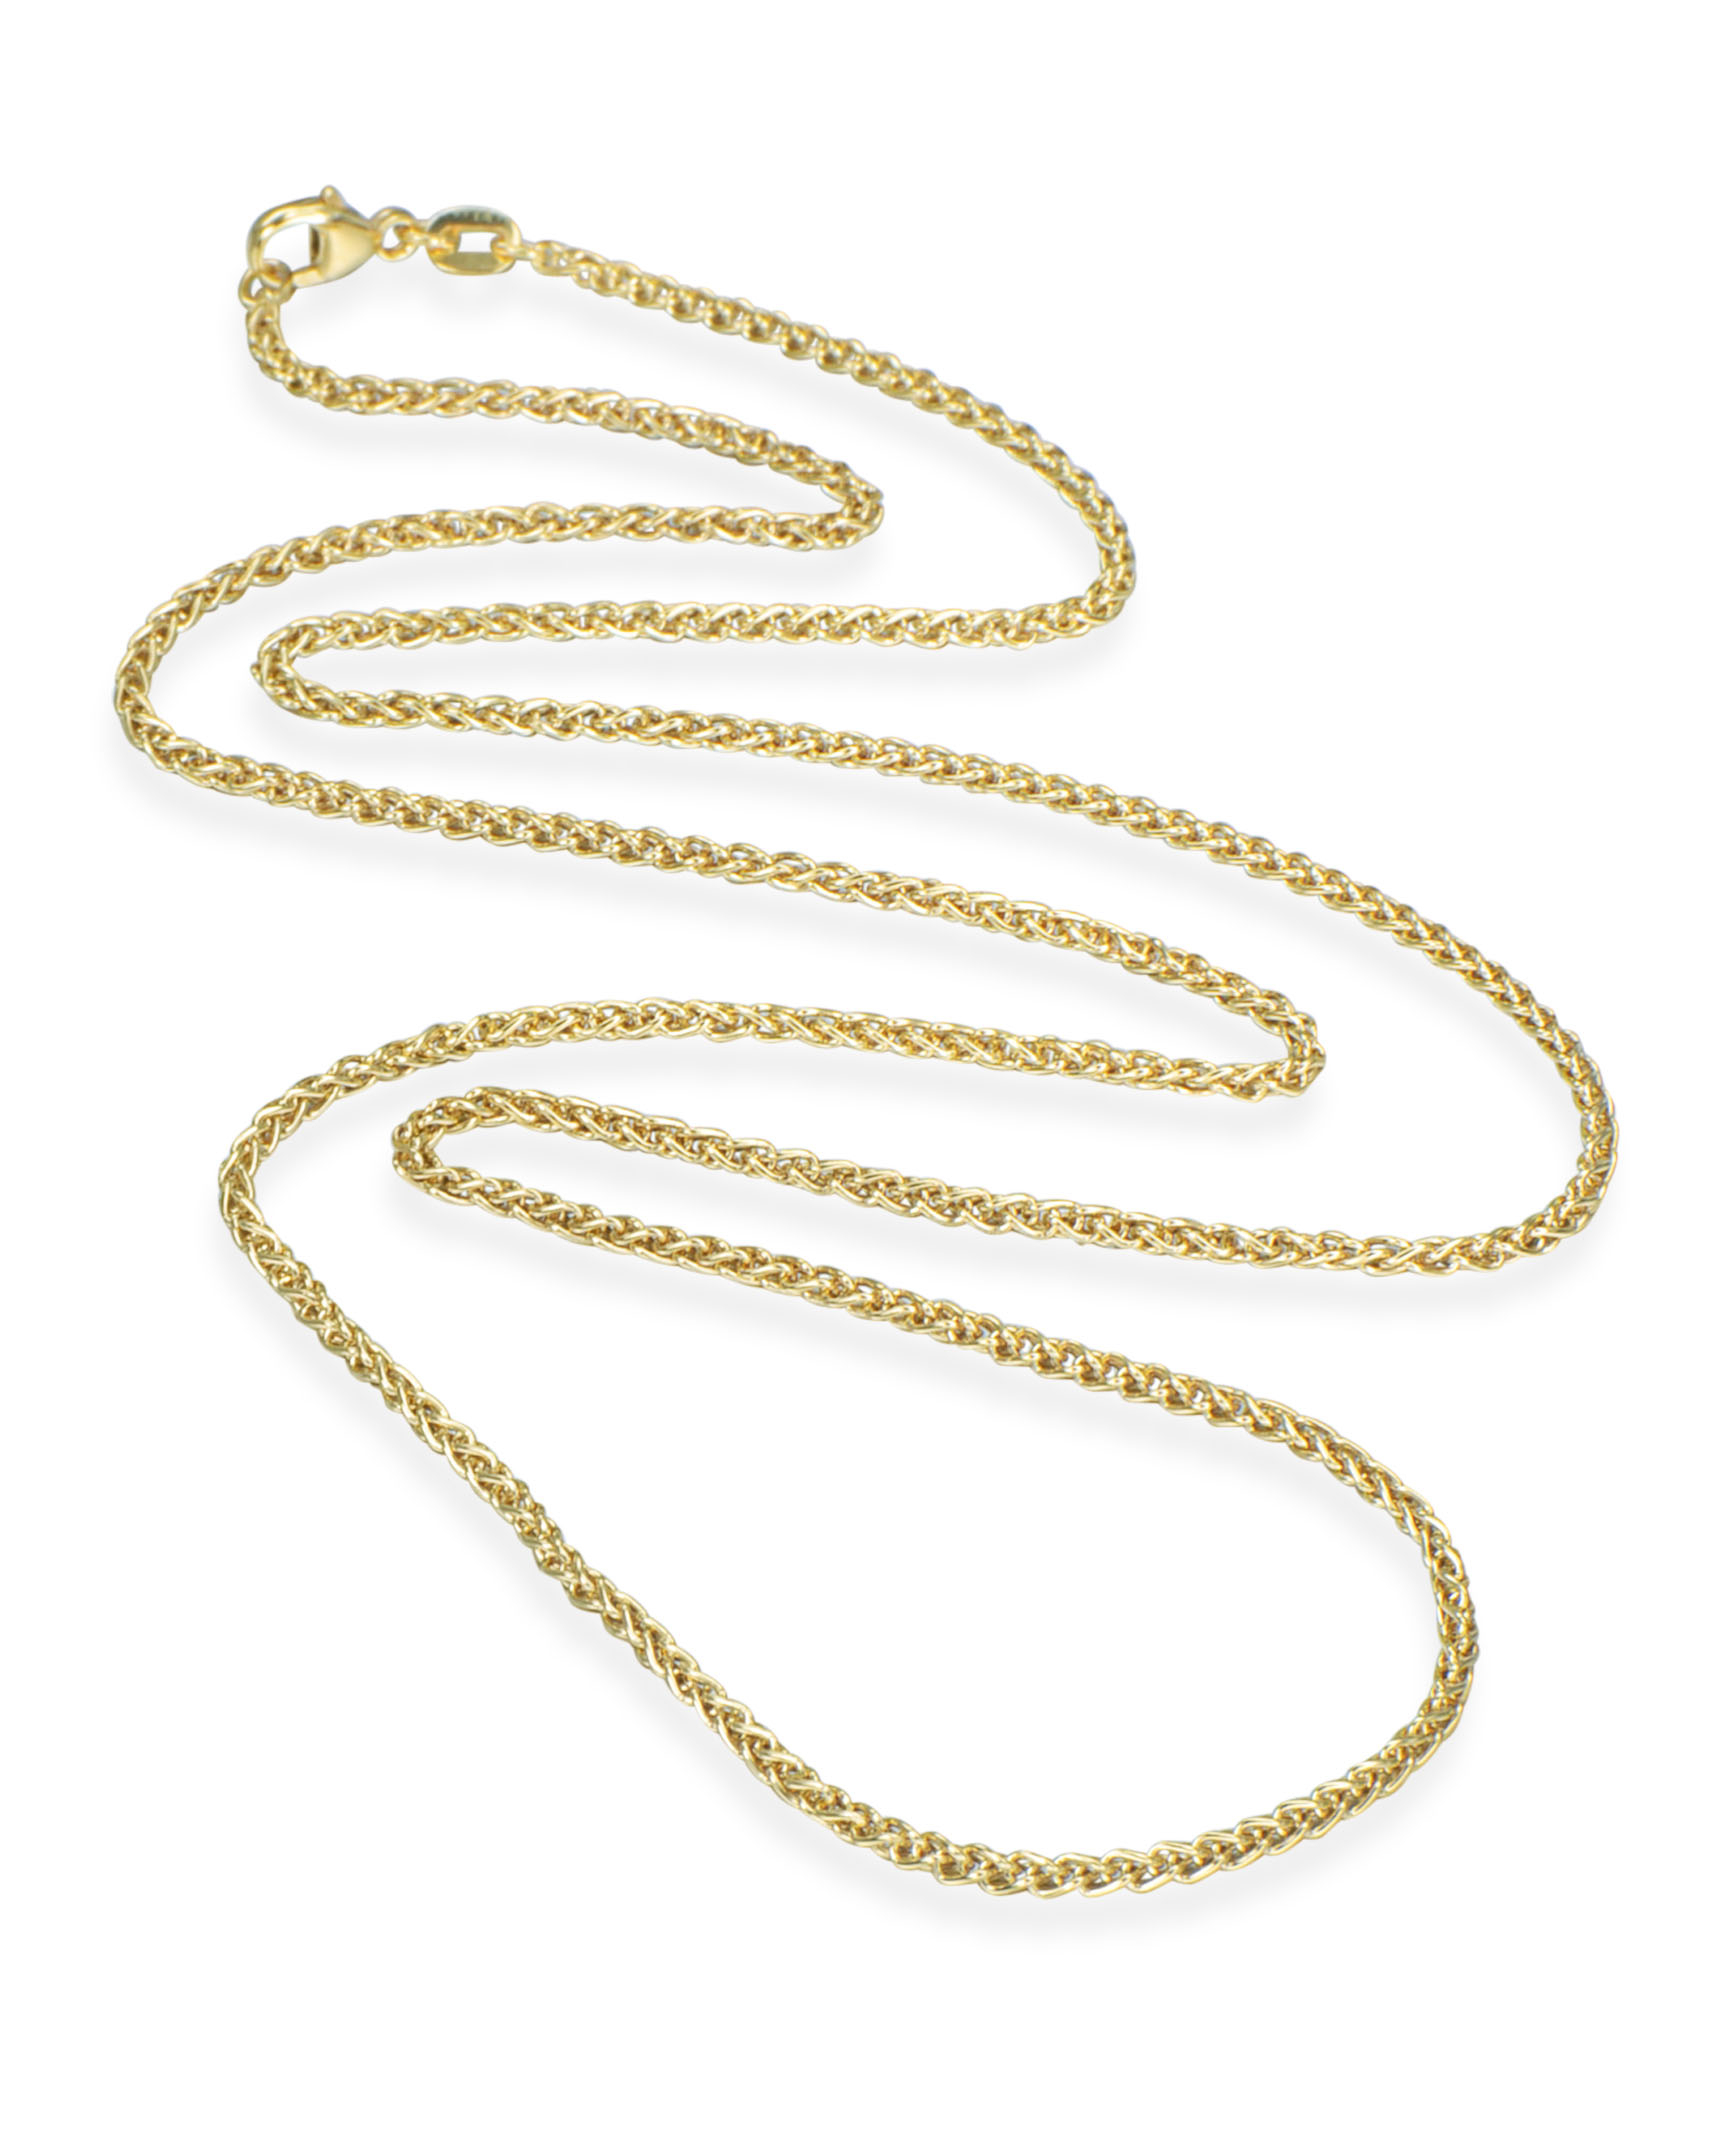 30″ Yellow Gold Wheat Chain Necklace Throughout Current Wheat Pendant Necklaces (View 6 of 25)